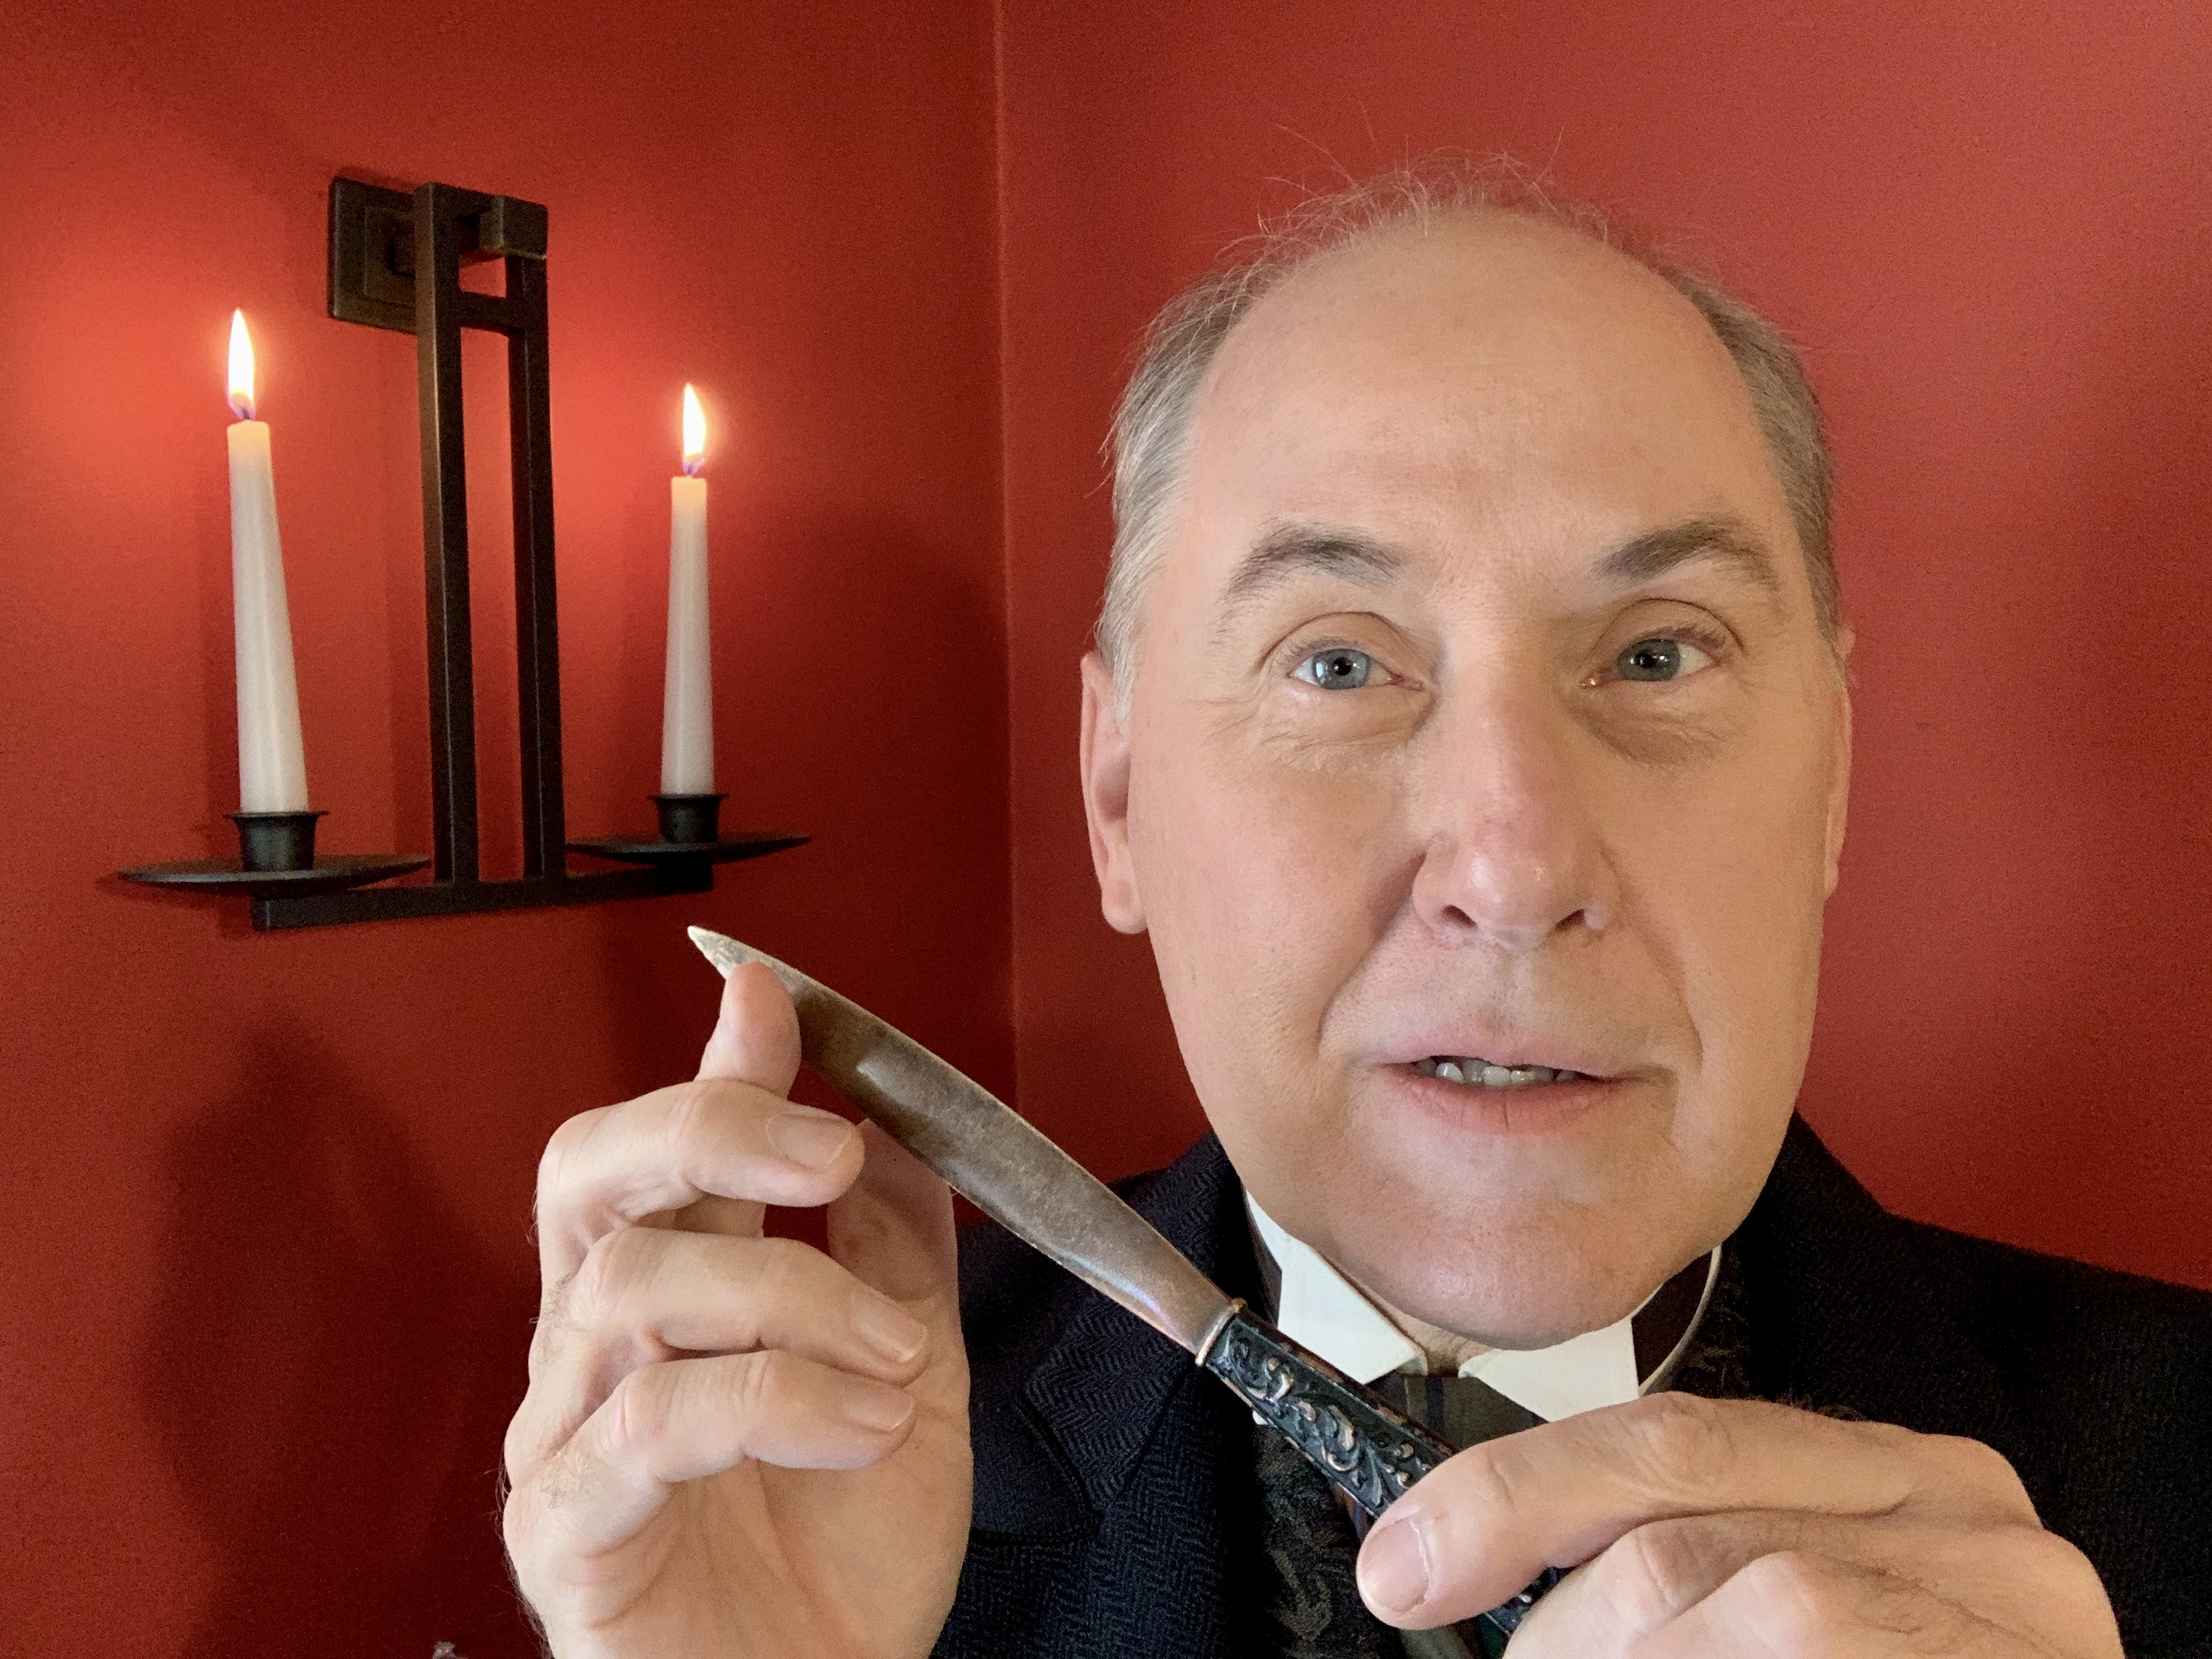 A man holds a knife in front of a red background with two white burning candles